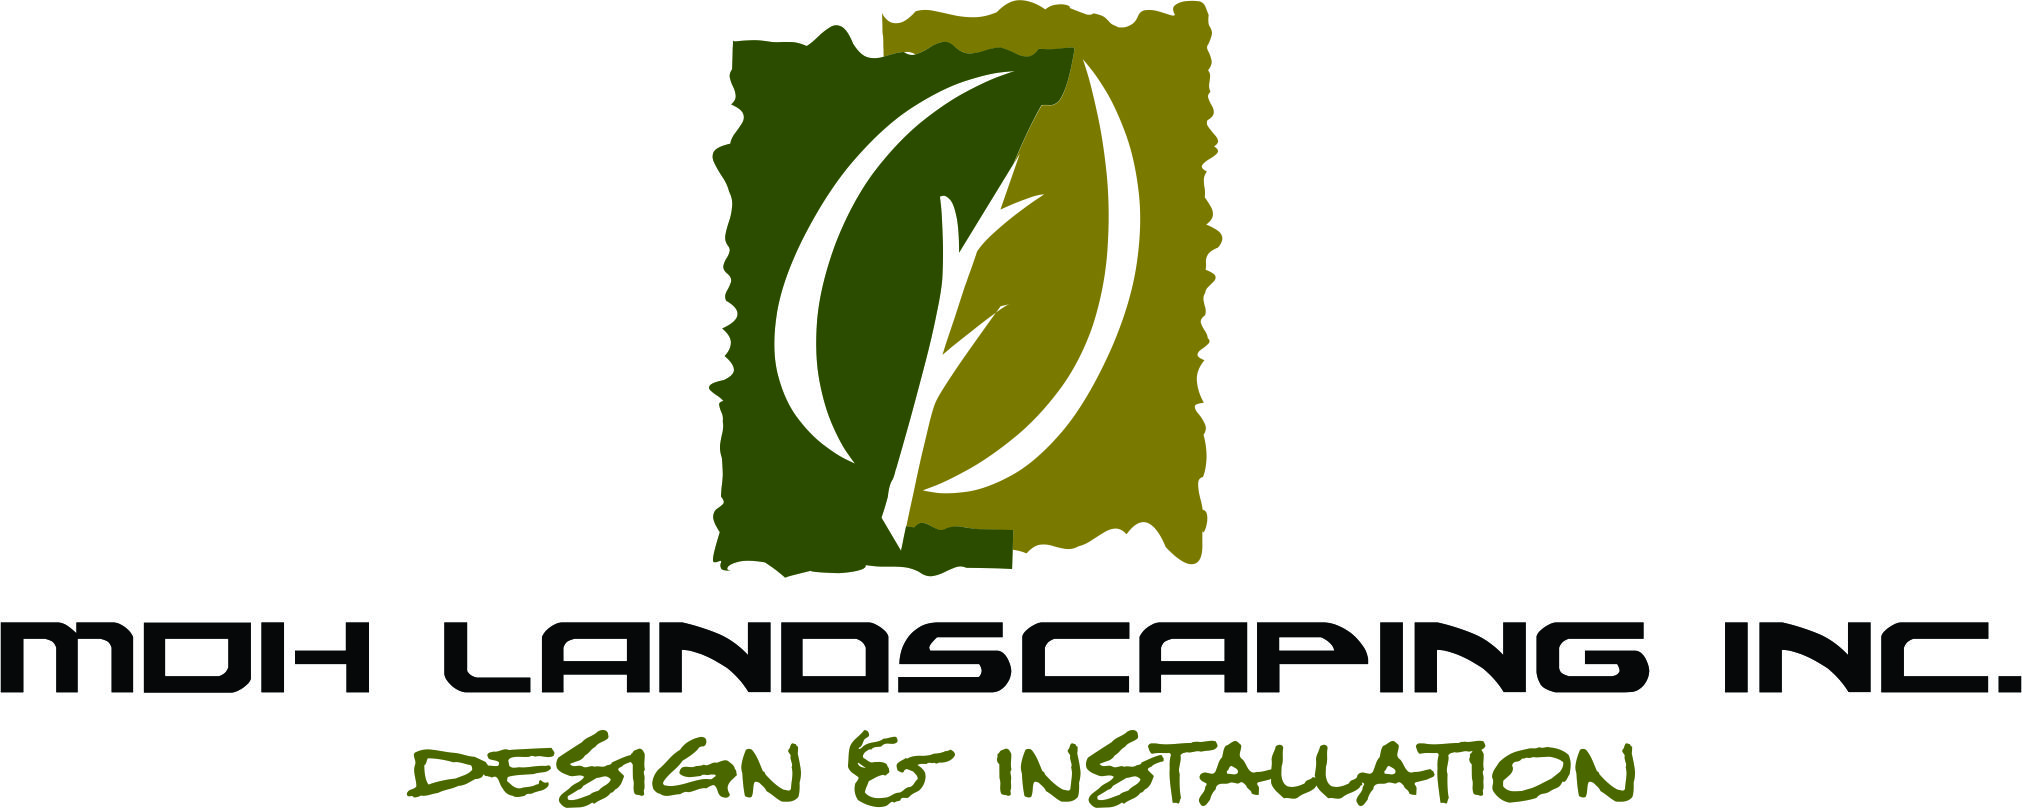 About mdh landscaping inc for Landscaping companies